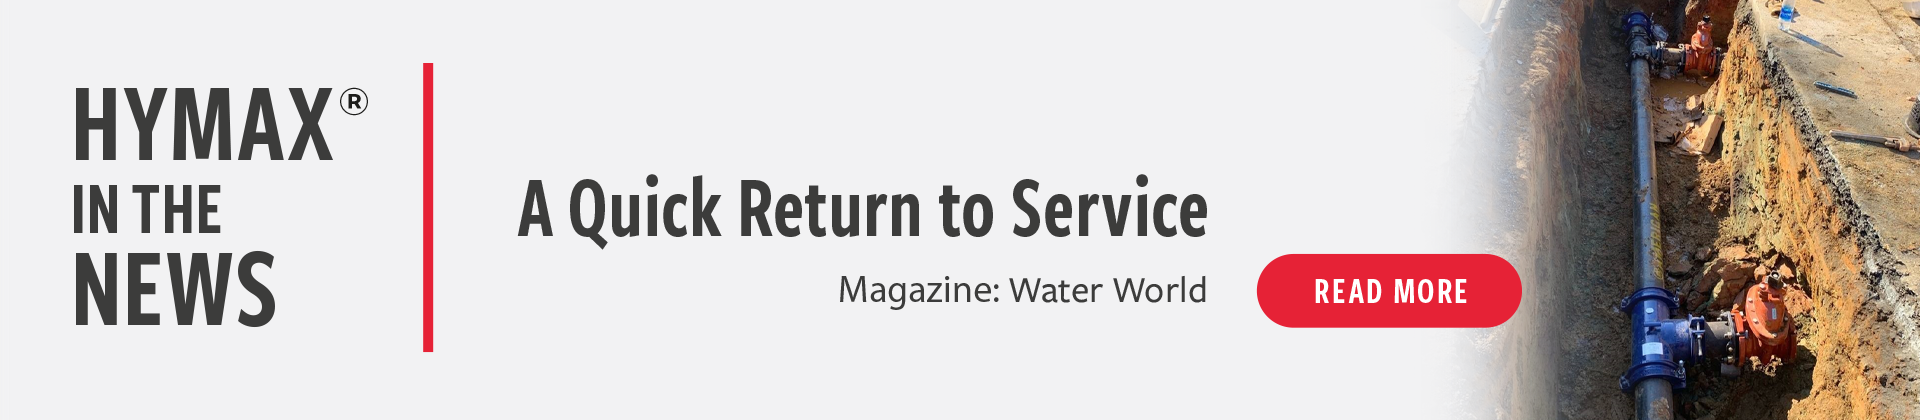 A Quick Return to Service